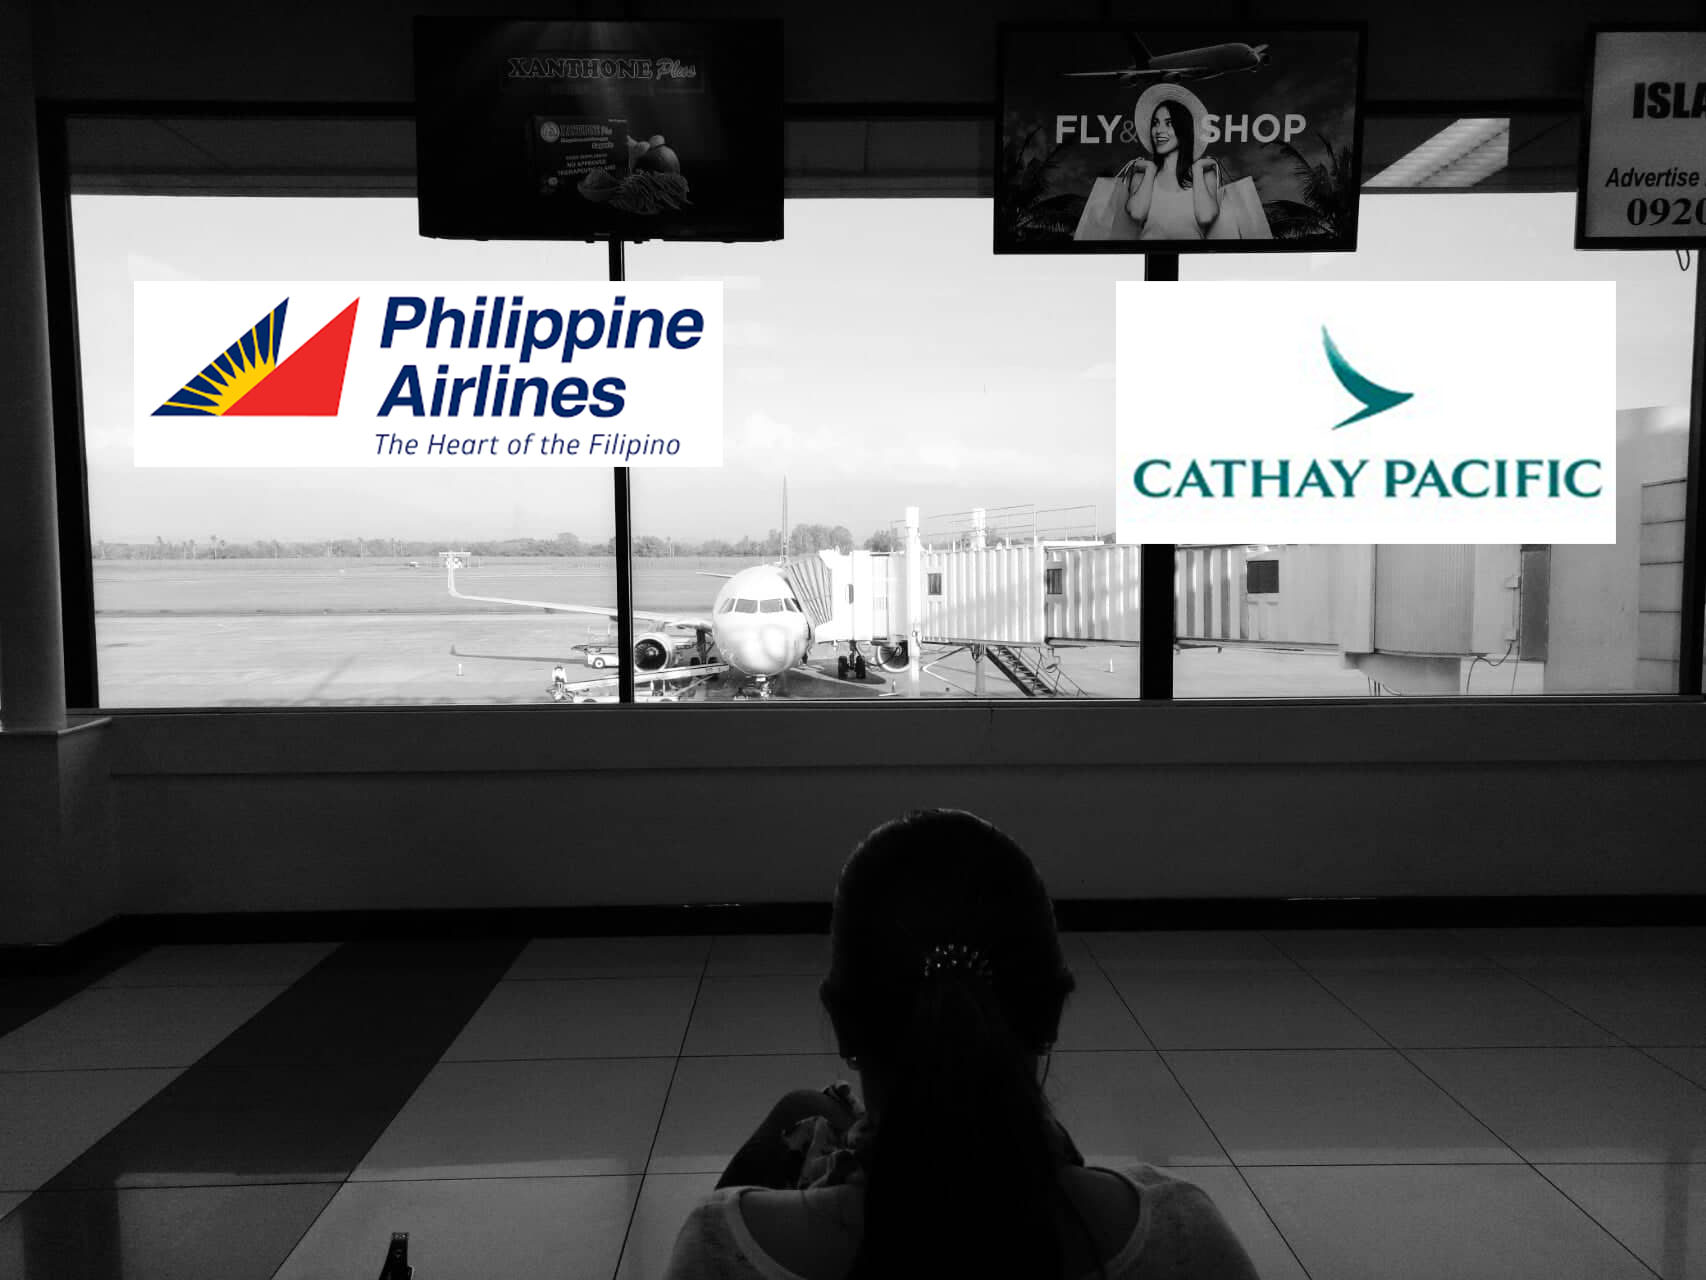 PAL, Cathay resume 'some' HK-Manila flights today